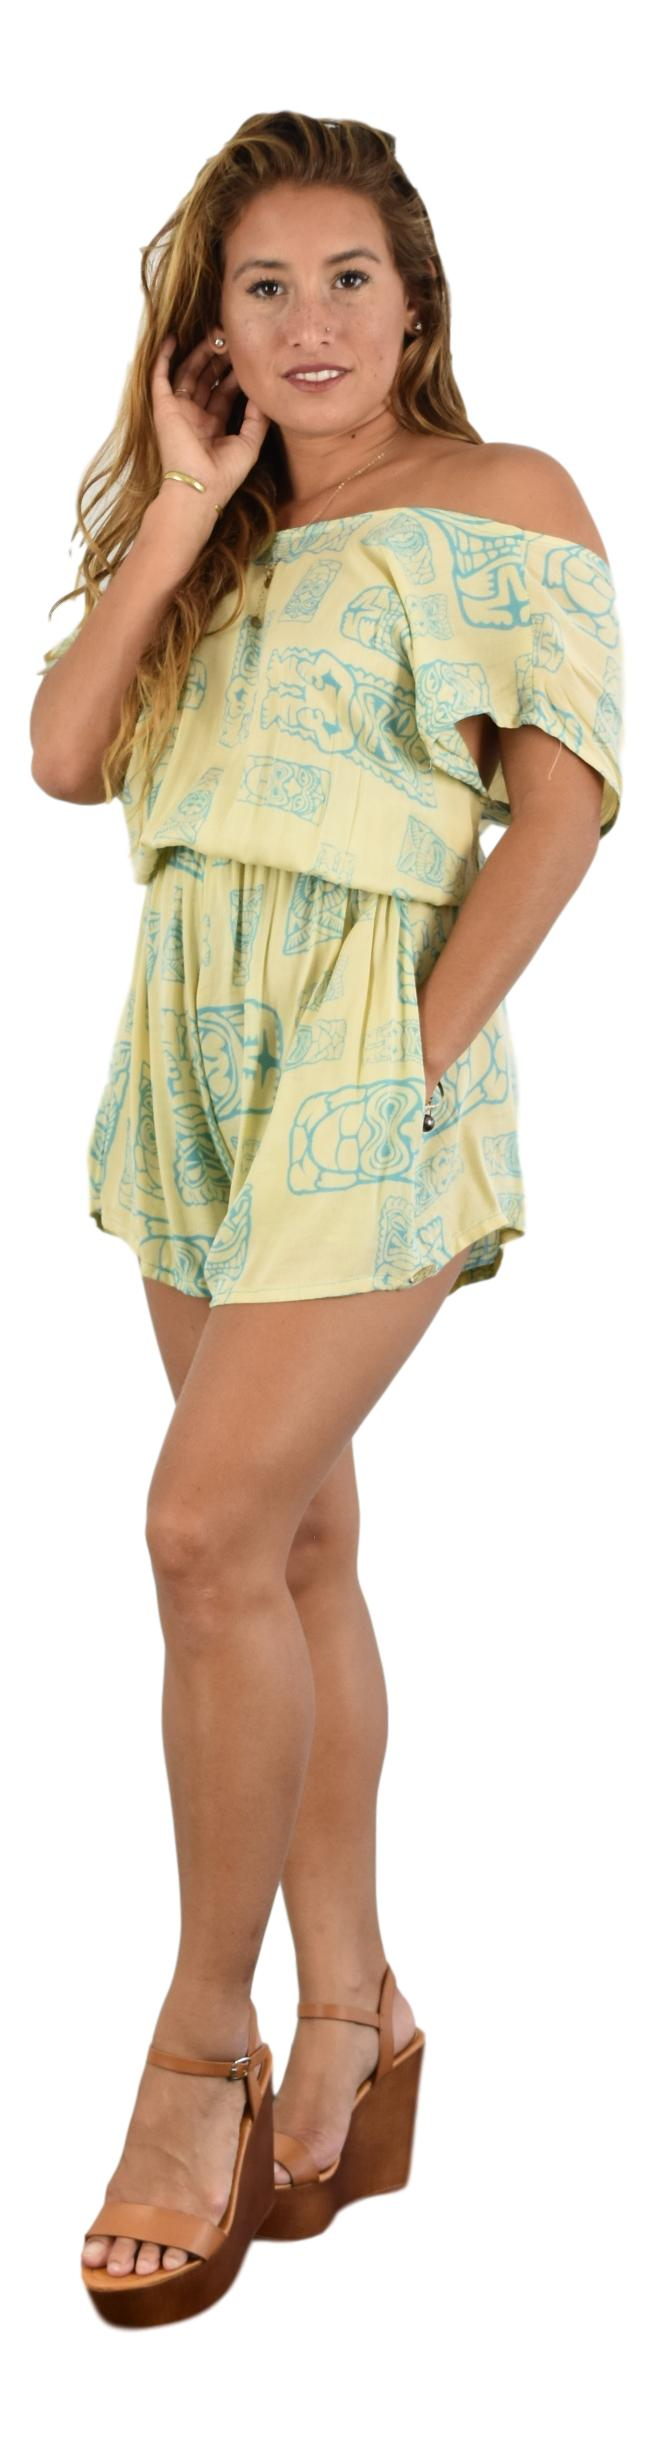 Aloha Royale - Romper - Tiki Fabric - Cream and Turquoise